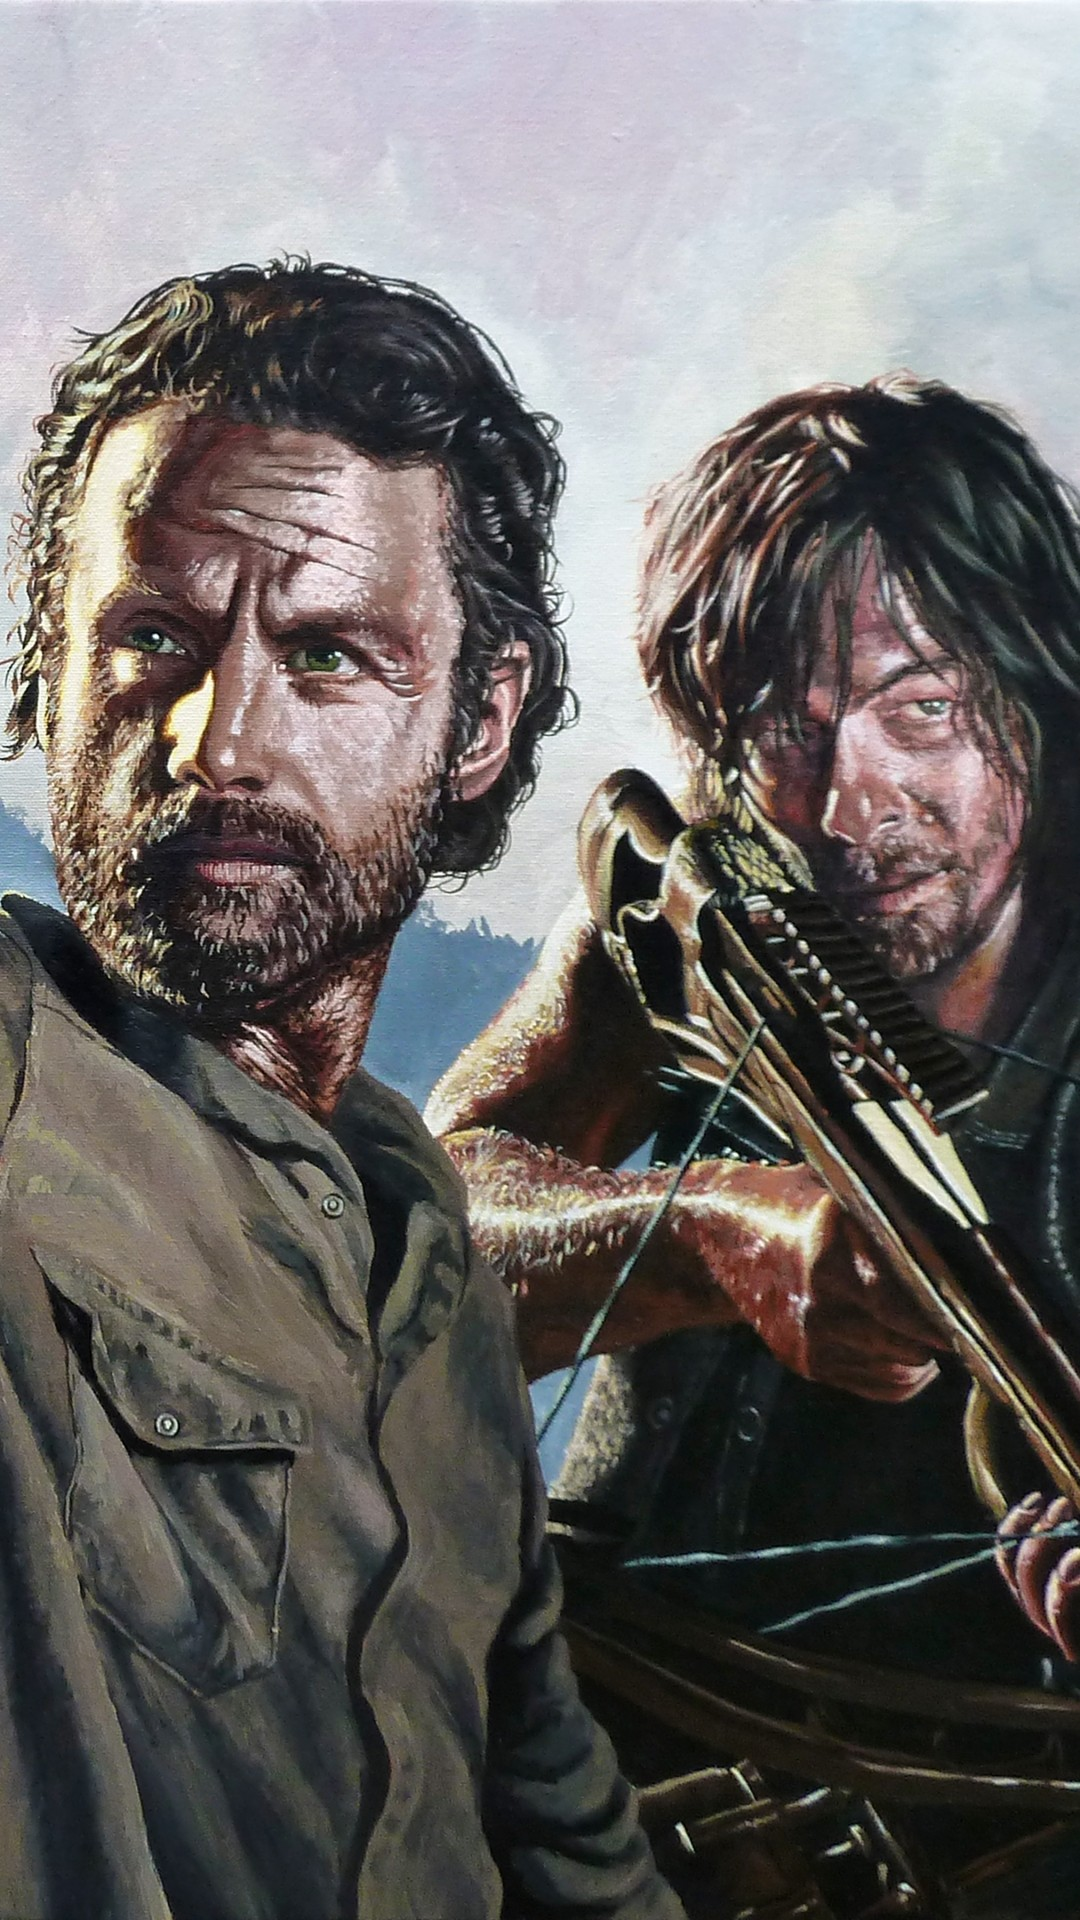 The Walking Dead Wallpaper Android Posted By John Mercado